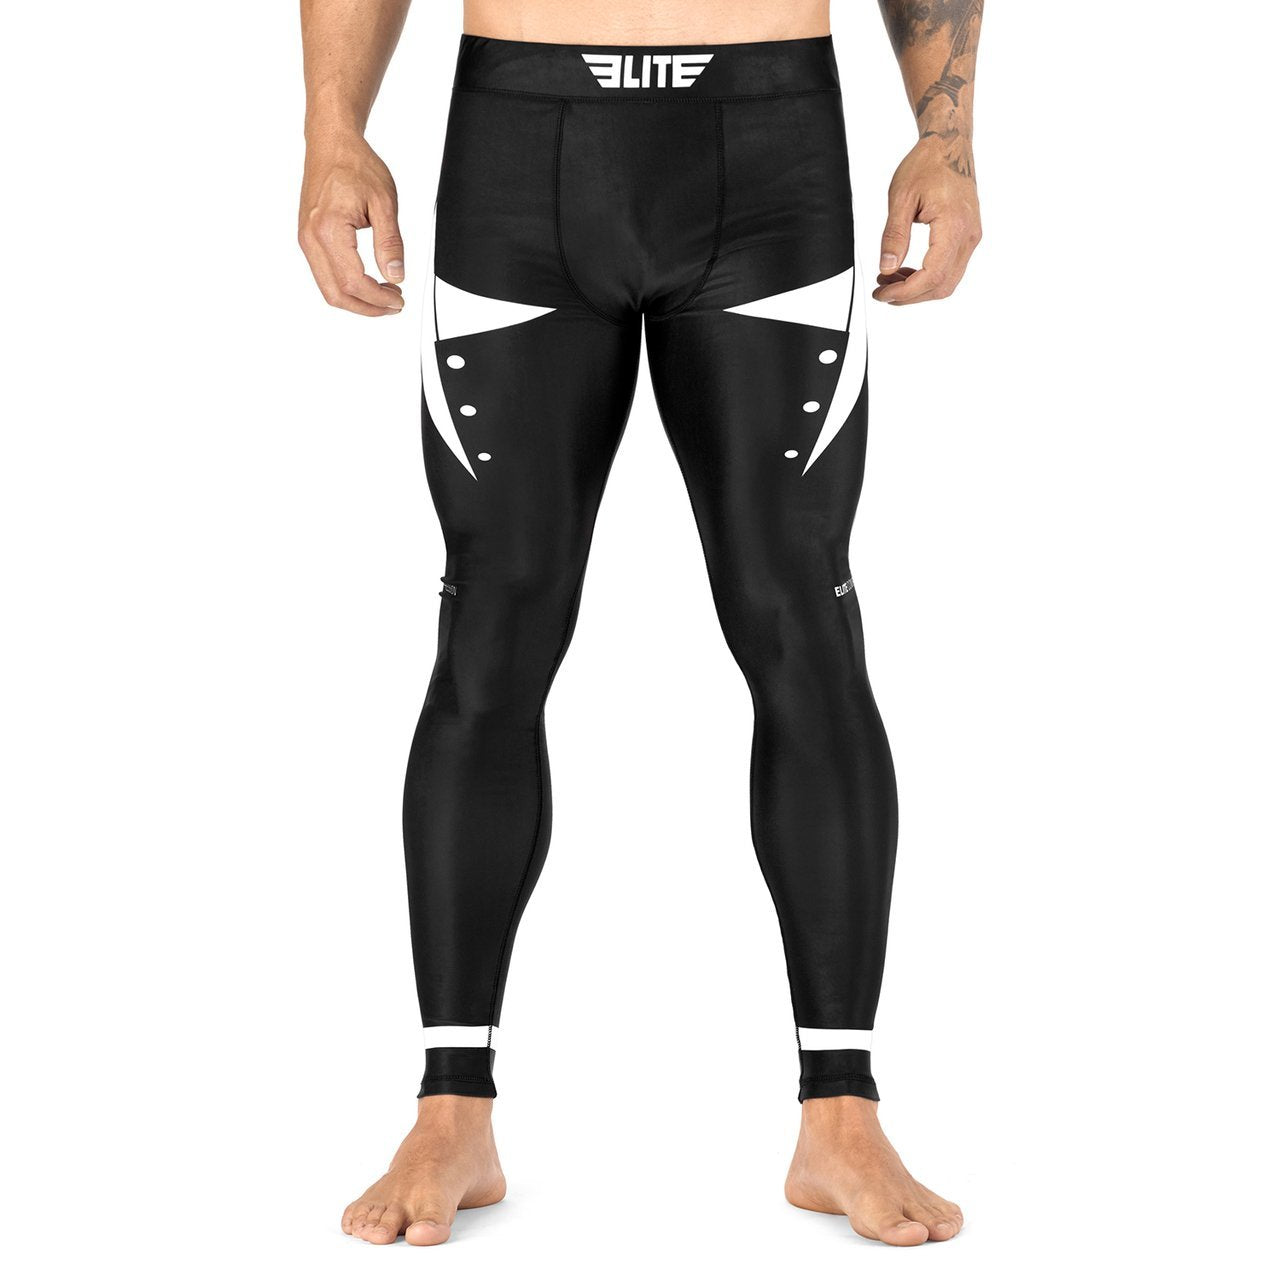 Load image into Gallery viewer, Elite Sports Star Series Black/White Advance Compression Training Spat Pants